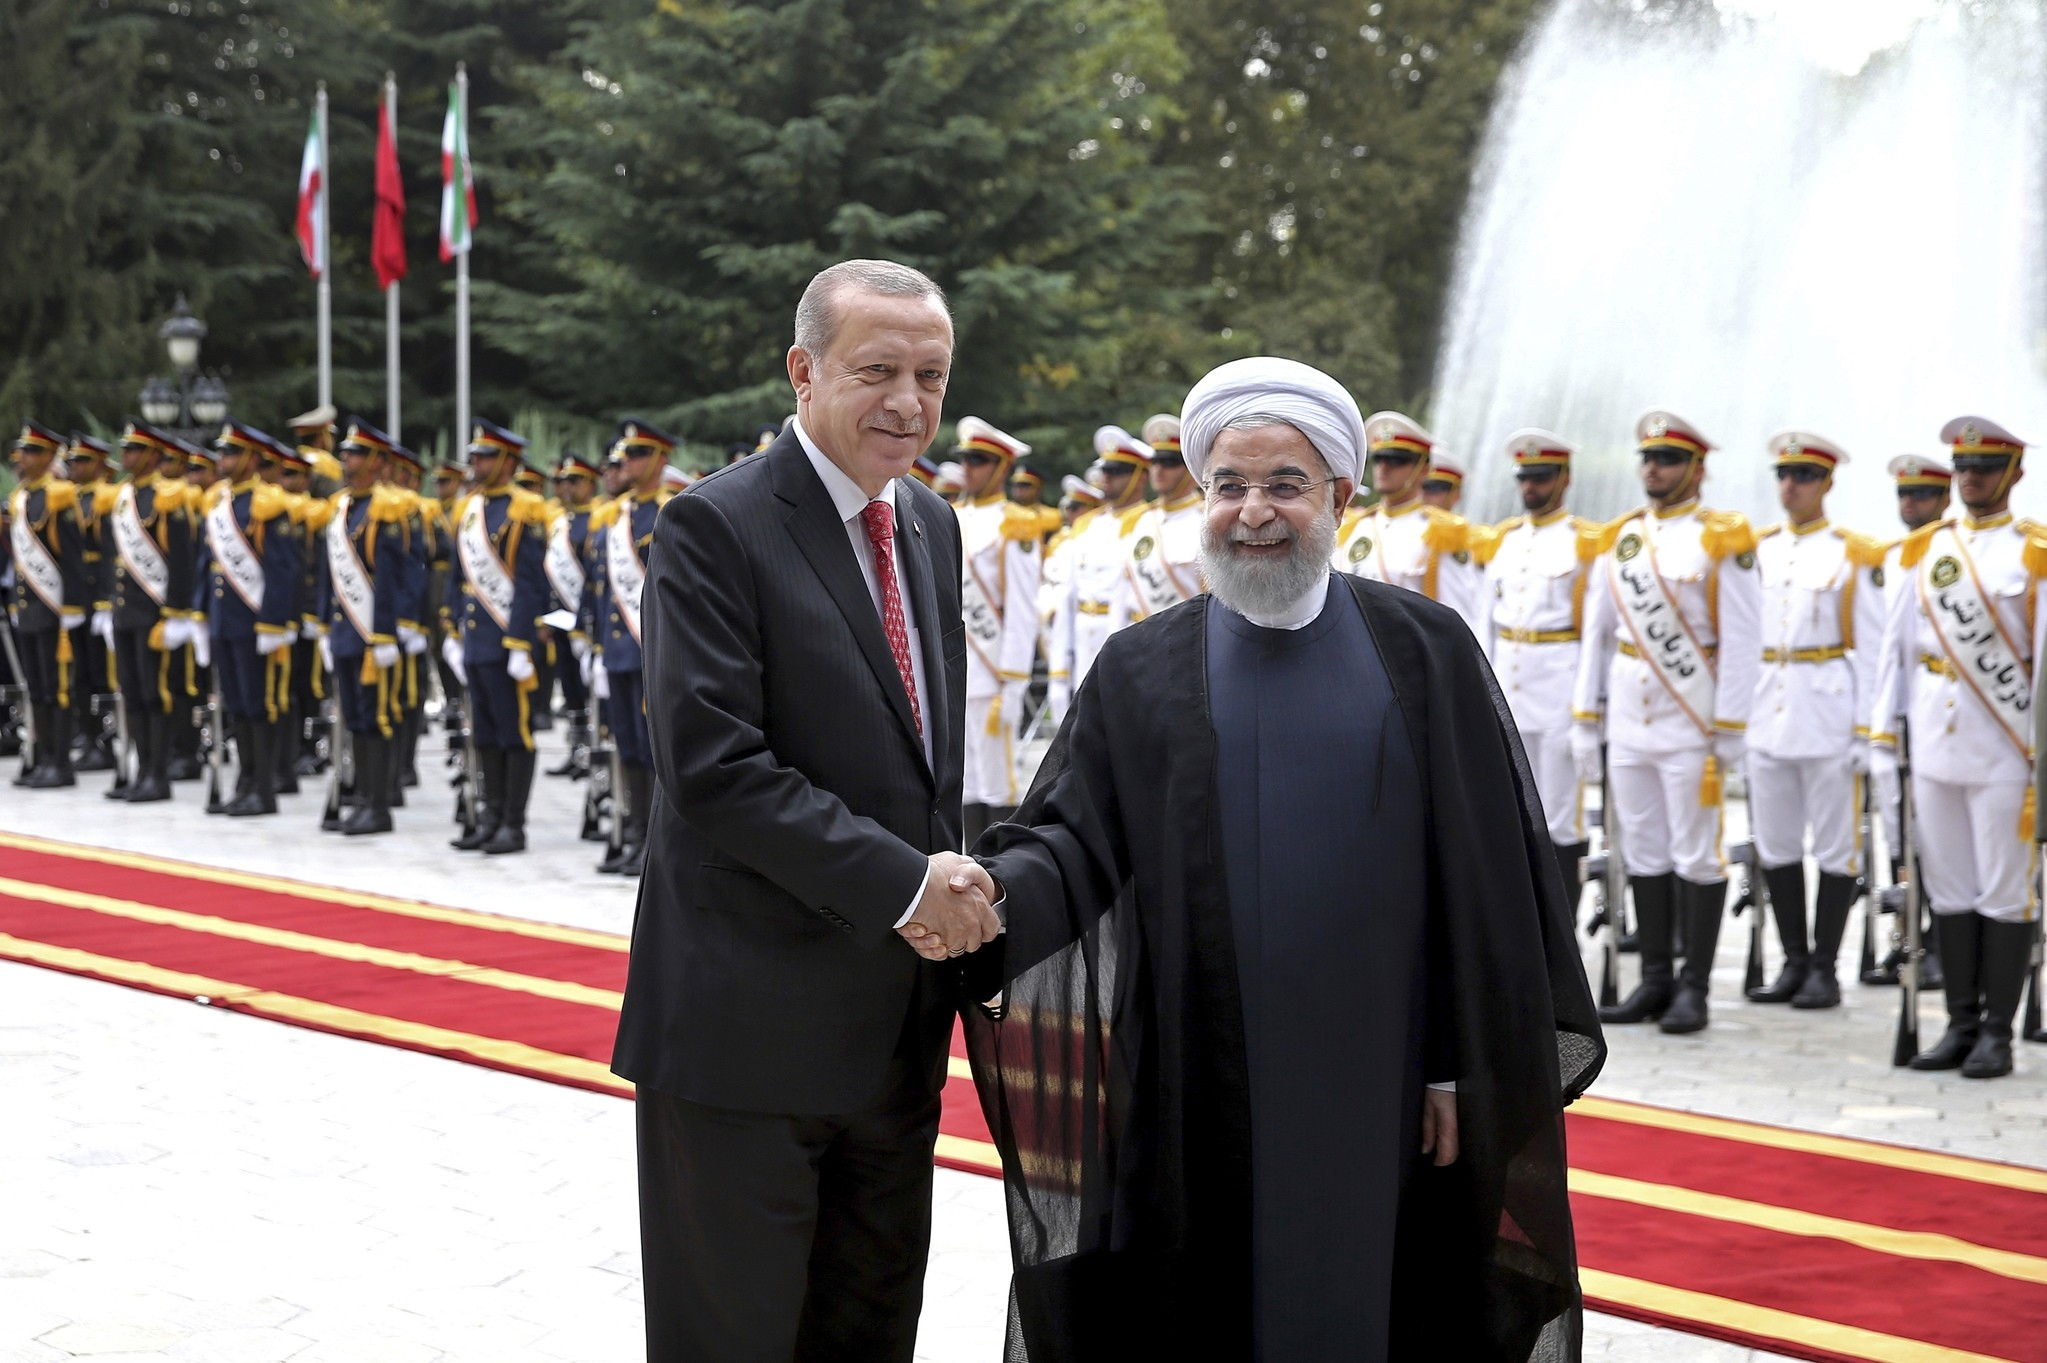 Erdou011fan (L) shakes hands for the cameras with Iranian President Rouhani, during the official arrival ceremony, at the Saadabad Palace in Tehran Oct. 4, 2017. (AP Photo)